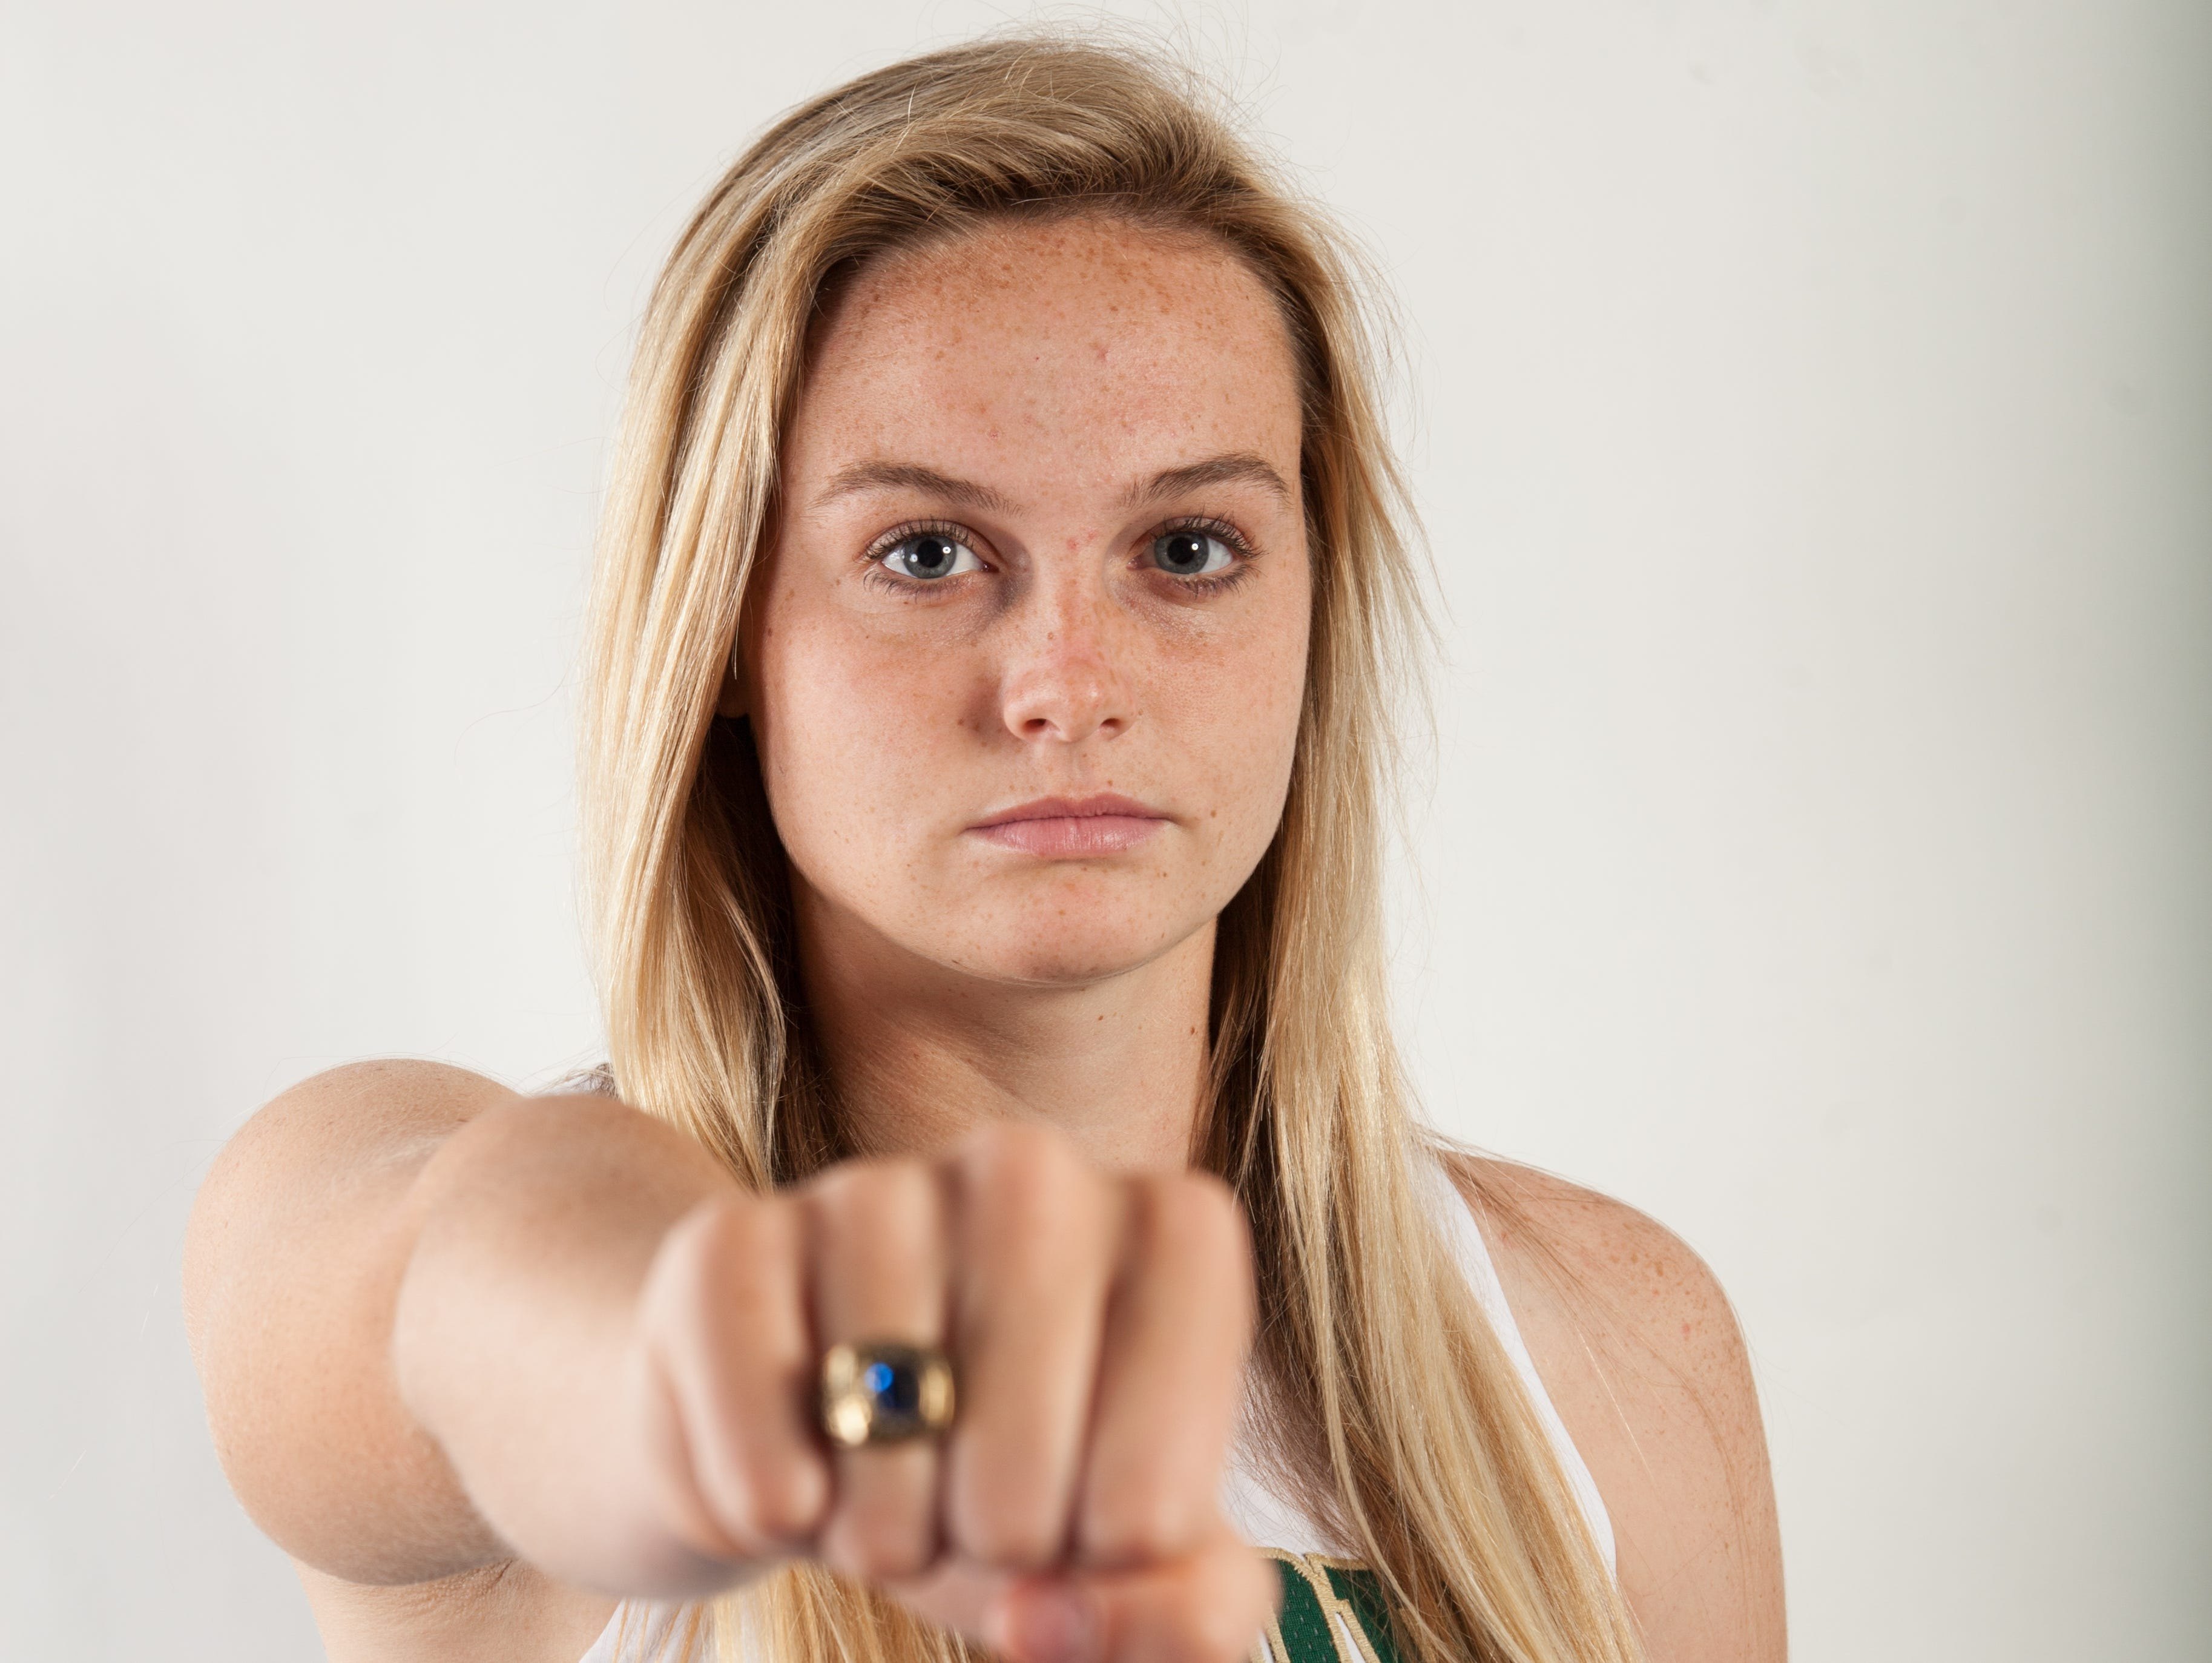 A three-sport athlete, Snow Canyon's Madison Mooring has been named the Spectrum's Female Athlete of the Year.